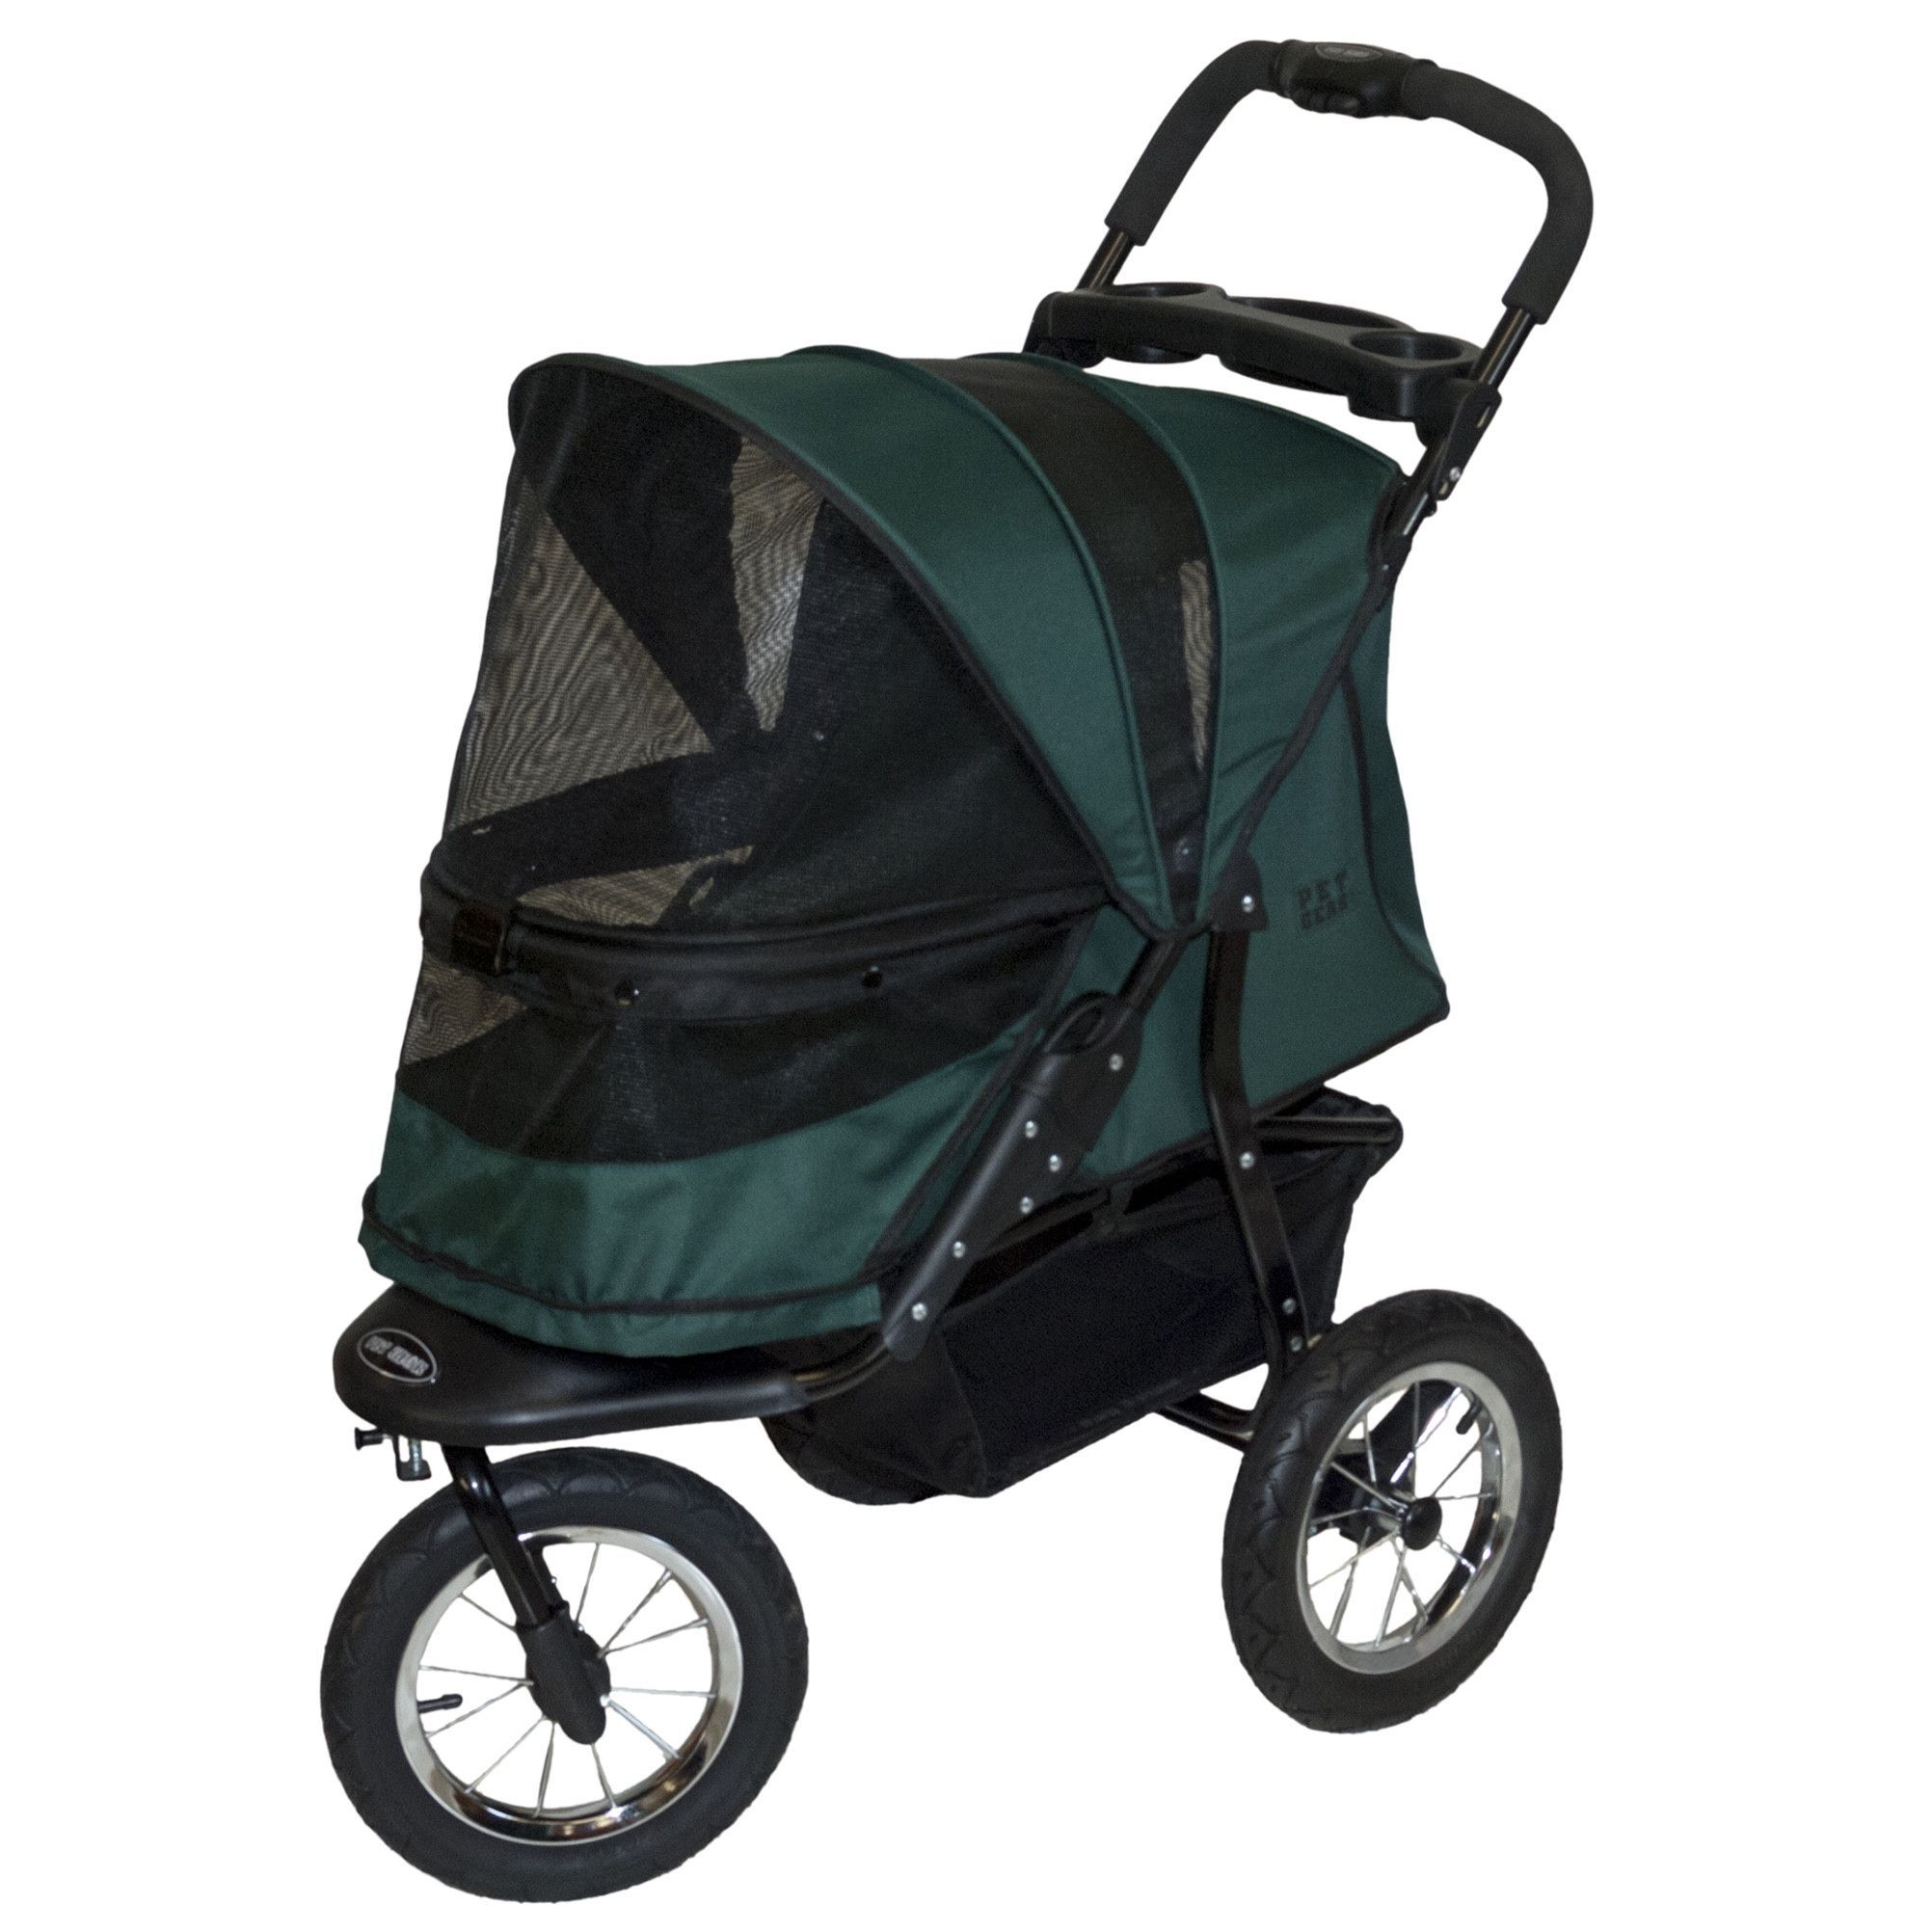 Jogger Stroller (ZipperFree Design) For Pets Up To 75